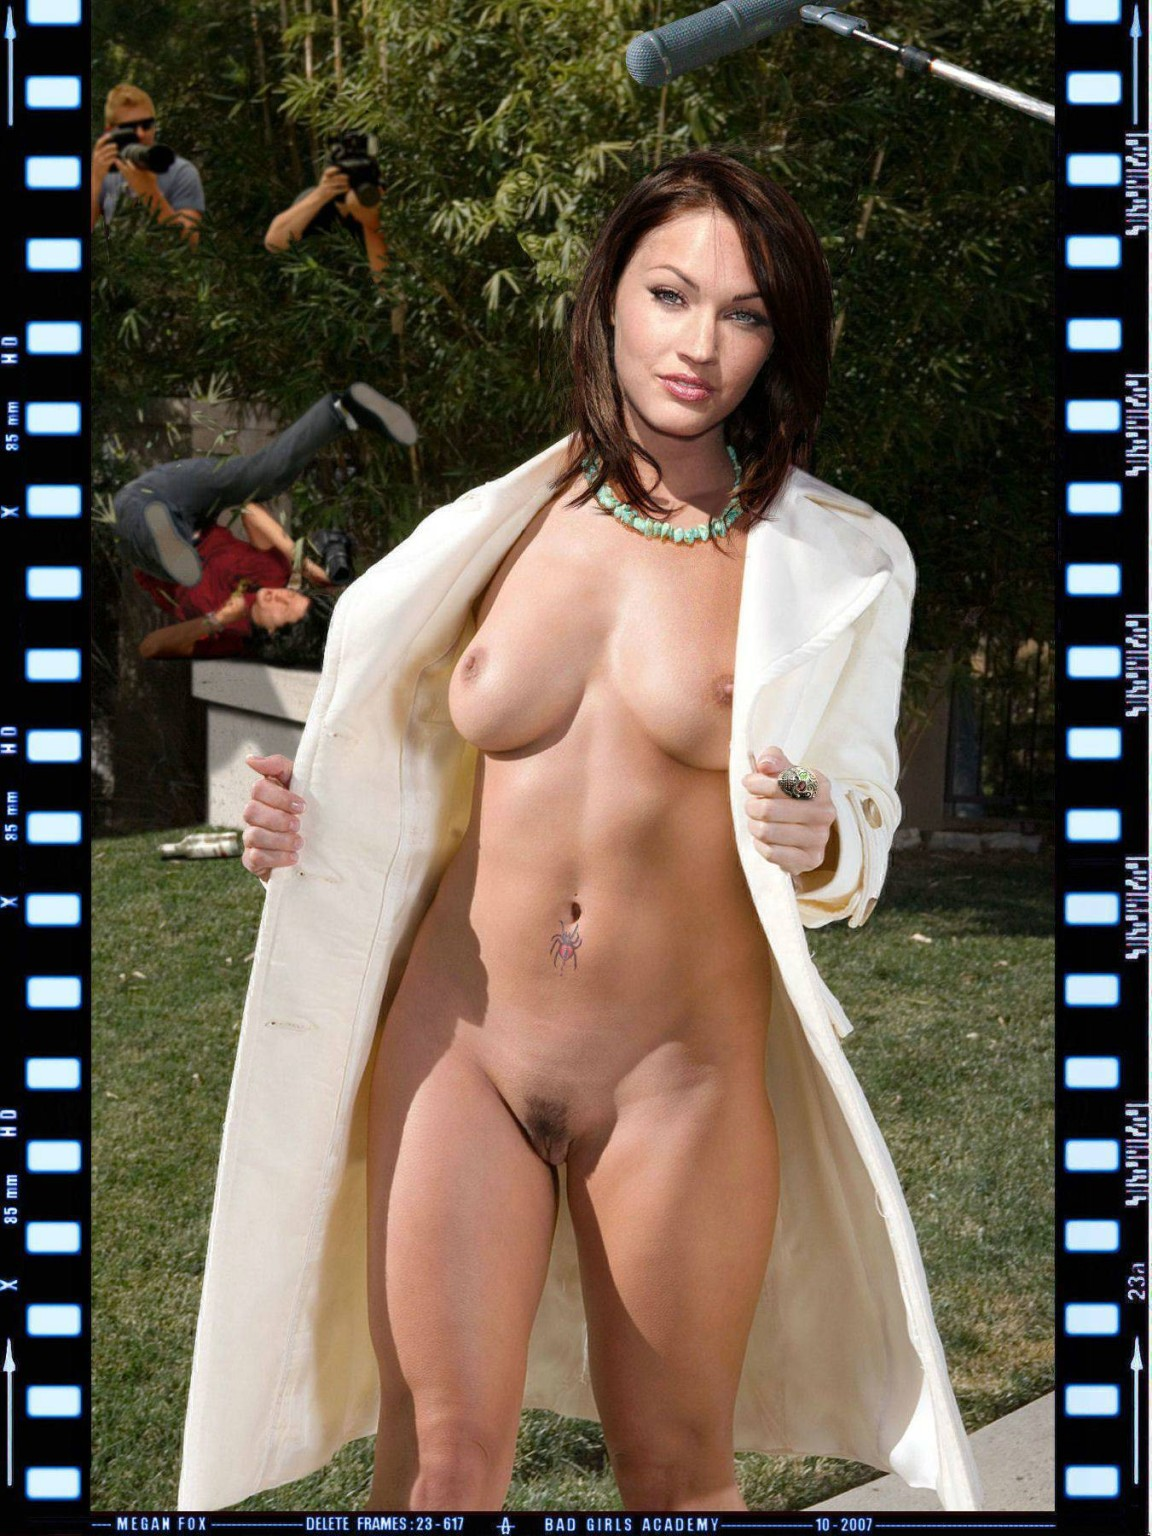 Megan fox getting fucked in imagination pics